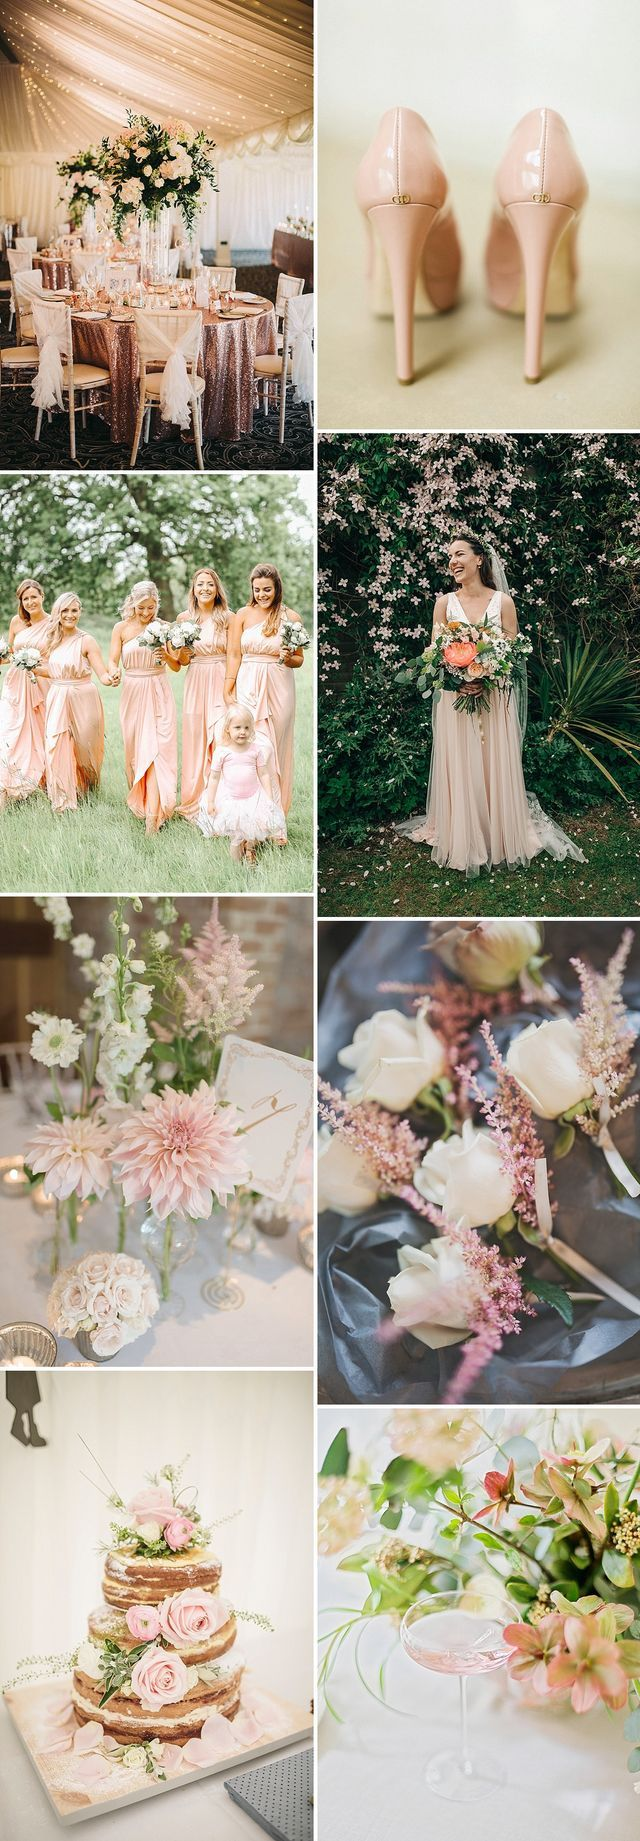 One of the enduring wedding trends that continues to feature so frequently (even from the moment I joined Rock My Wedding back in 2012) is the blush colour theme. Piles upon piles of exquisitely frame